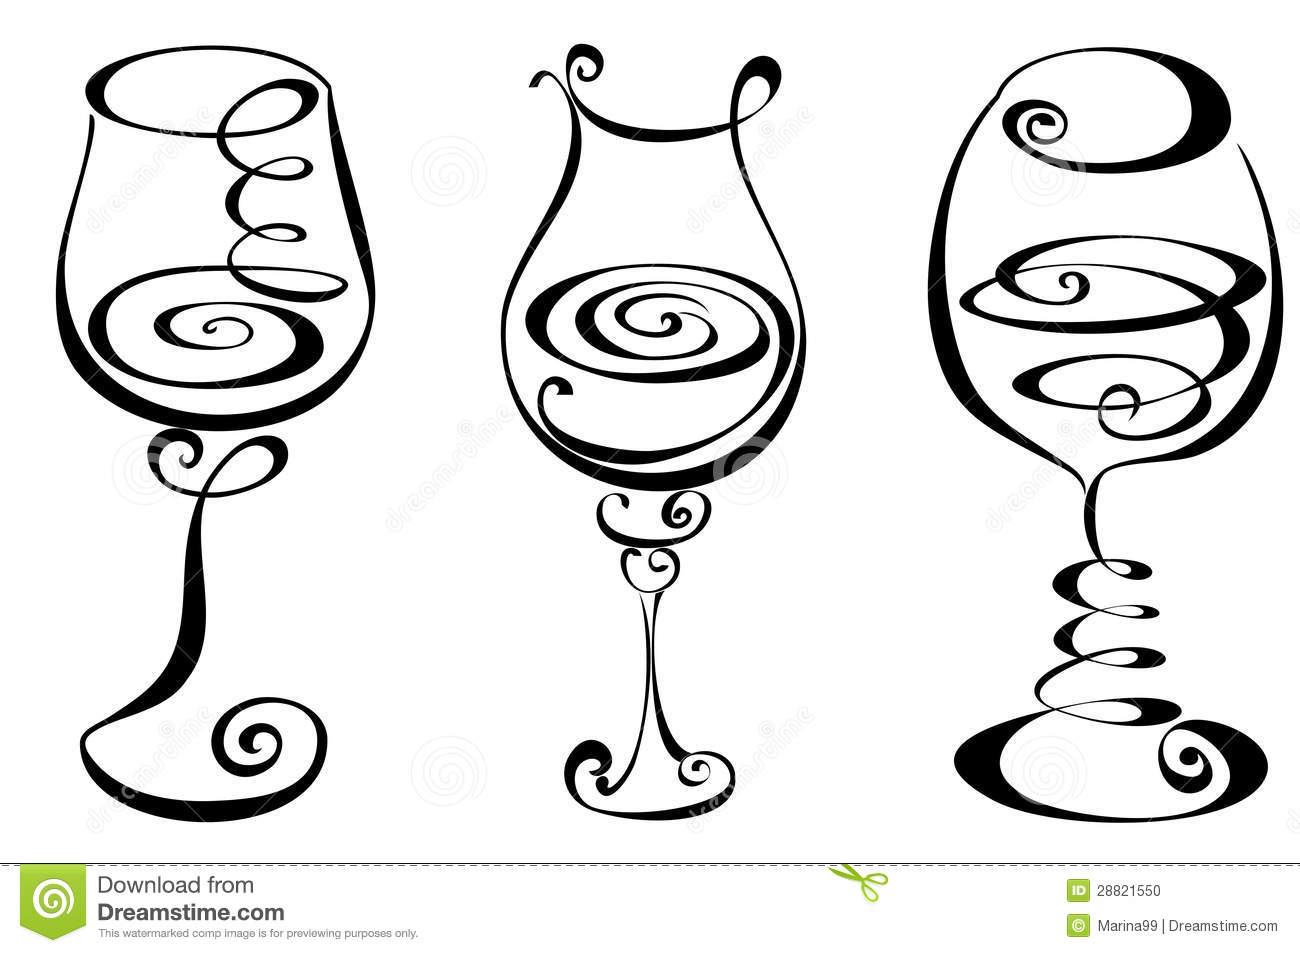 Stylized black and white wine glass.